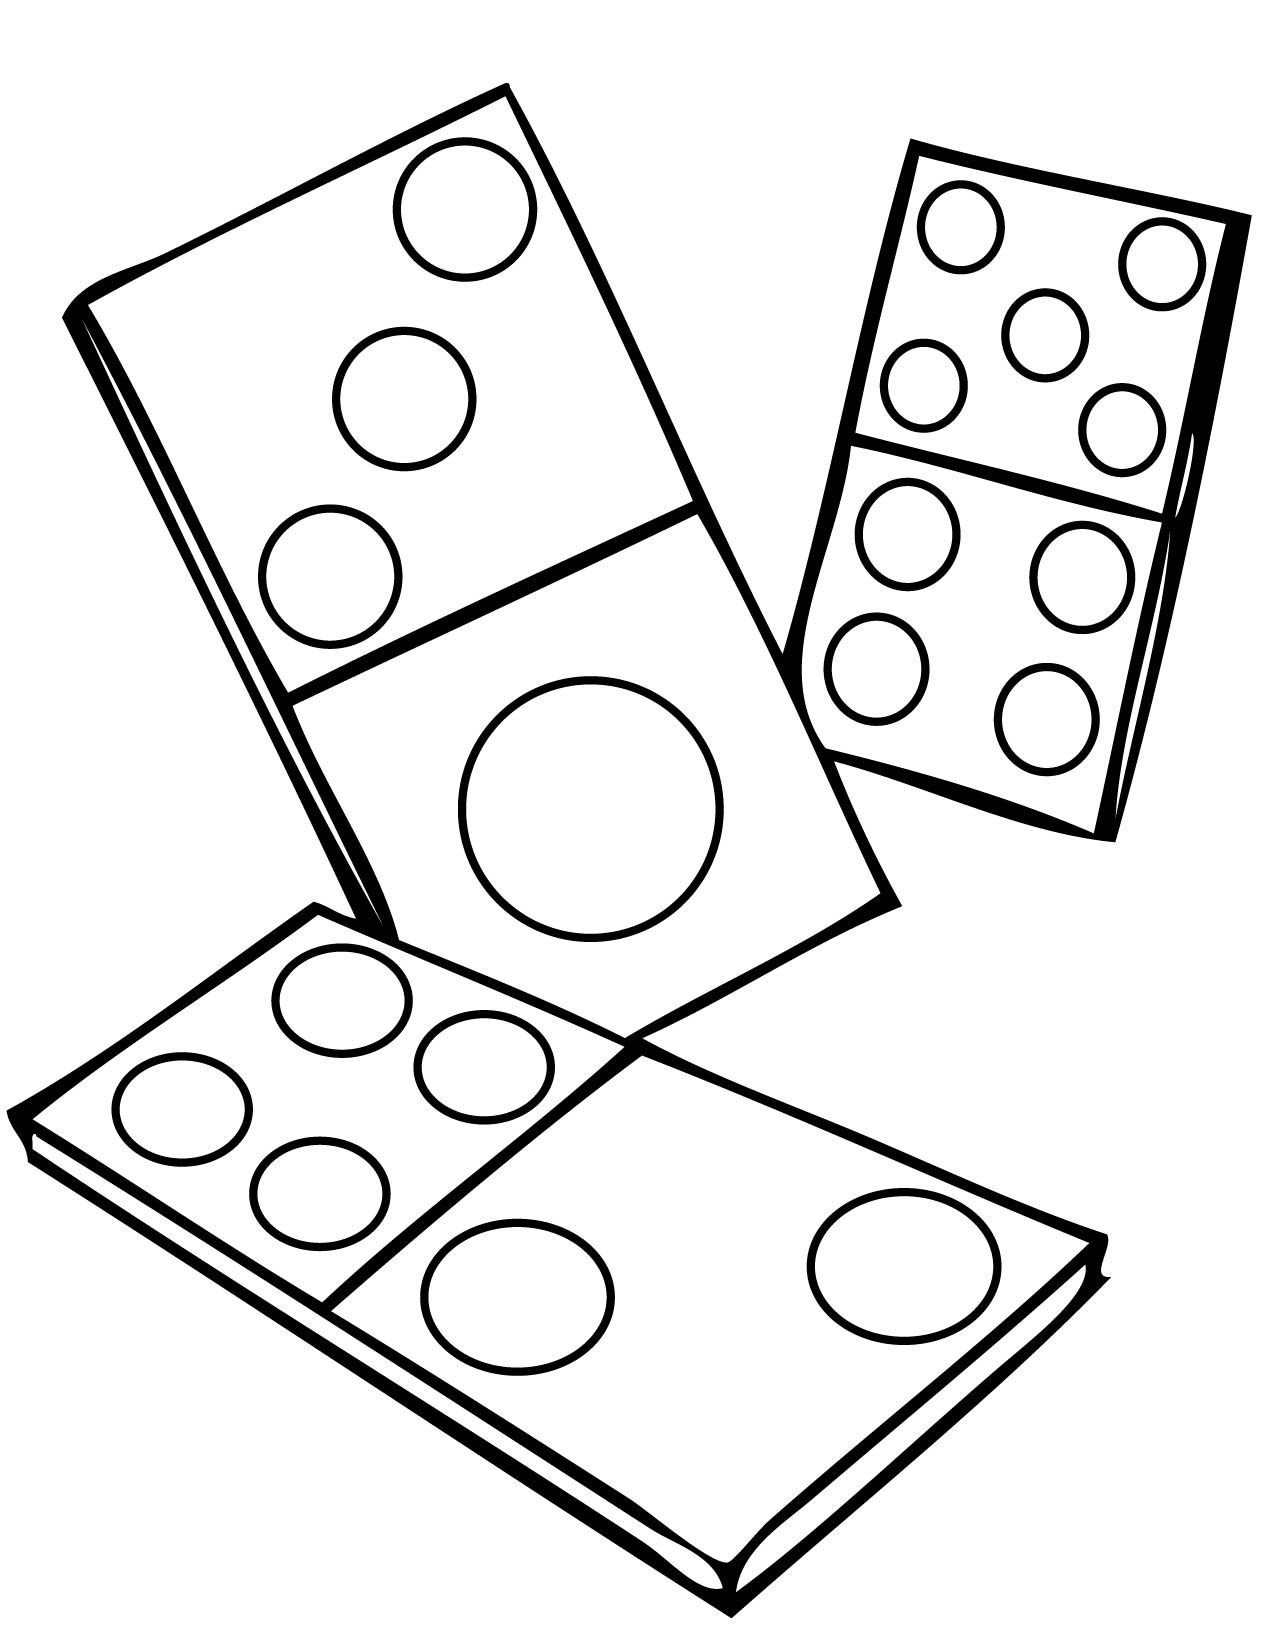 Dominoes Coloring Page  Handipoints